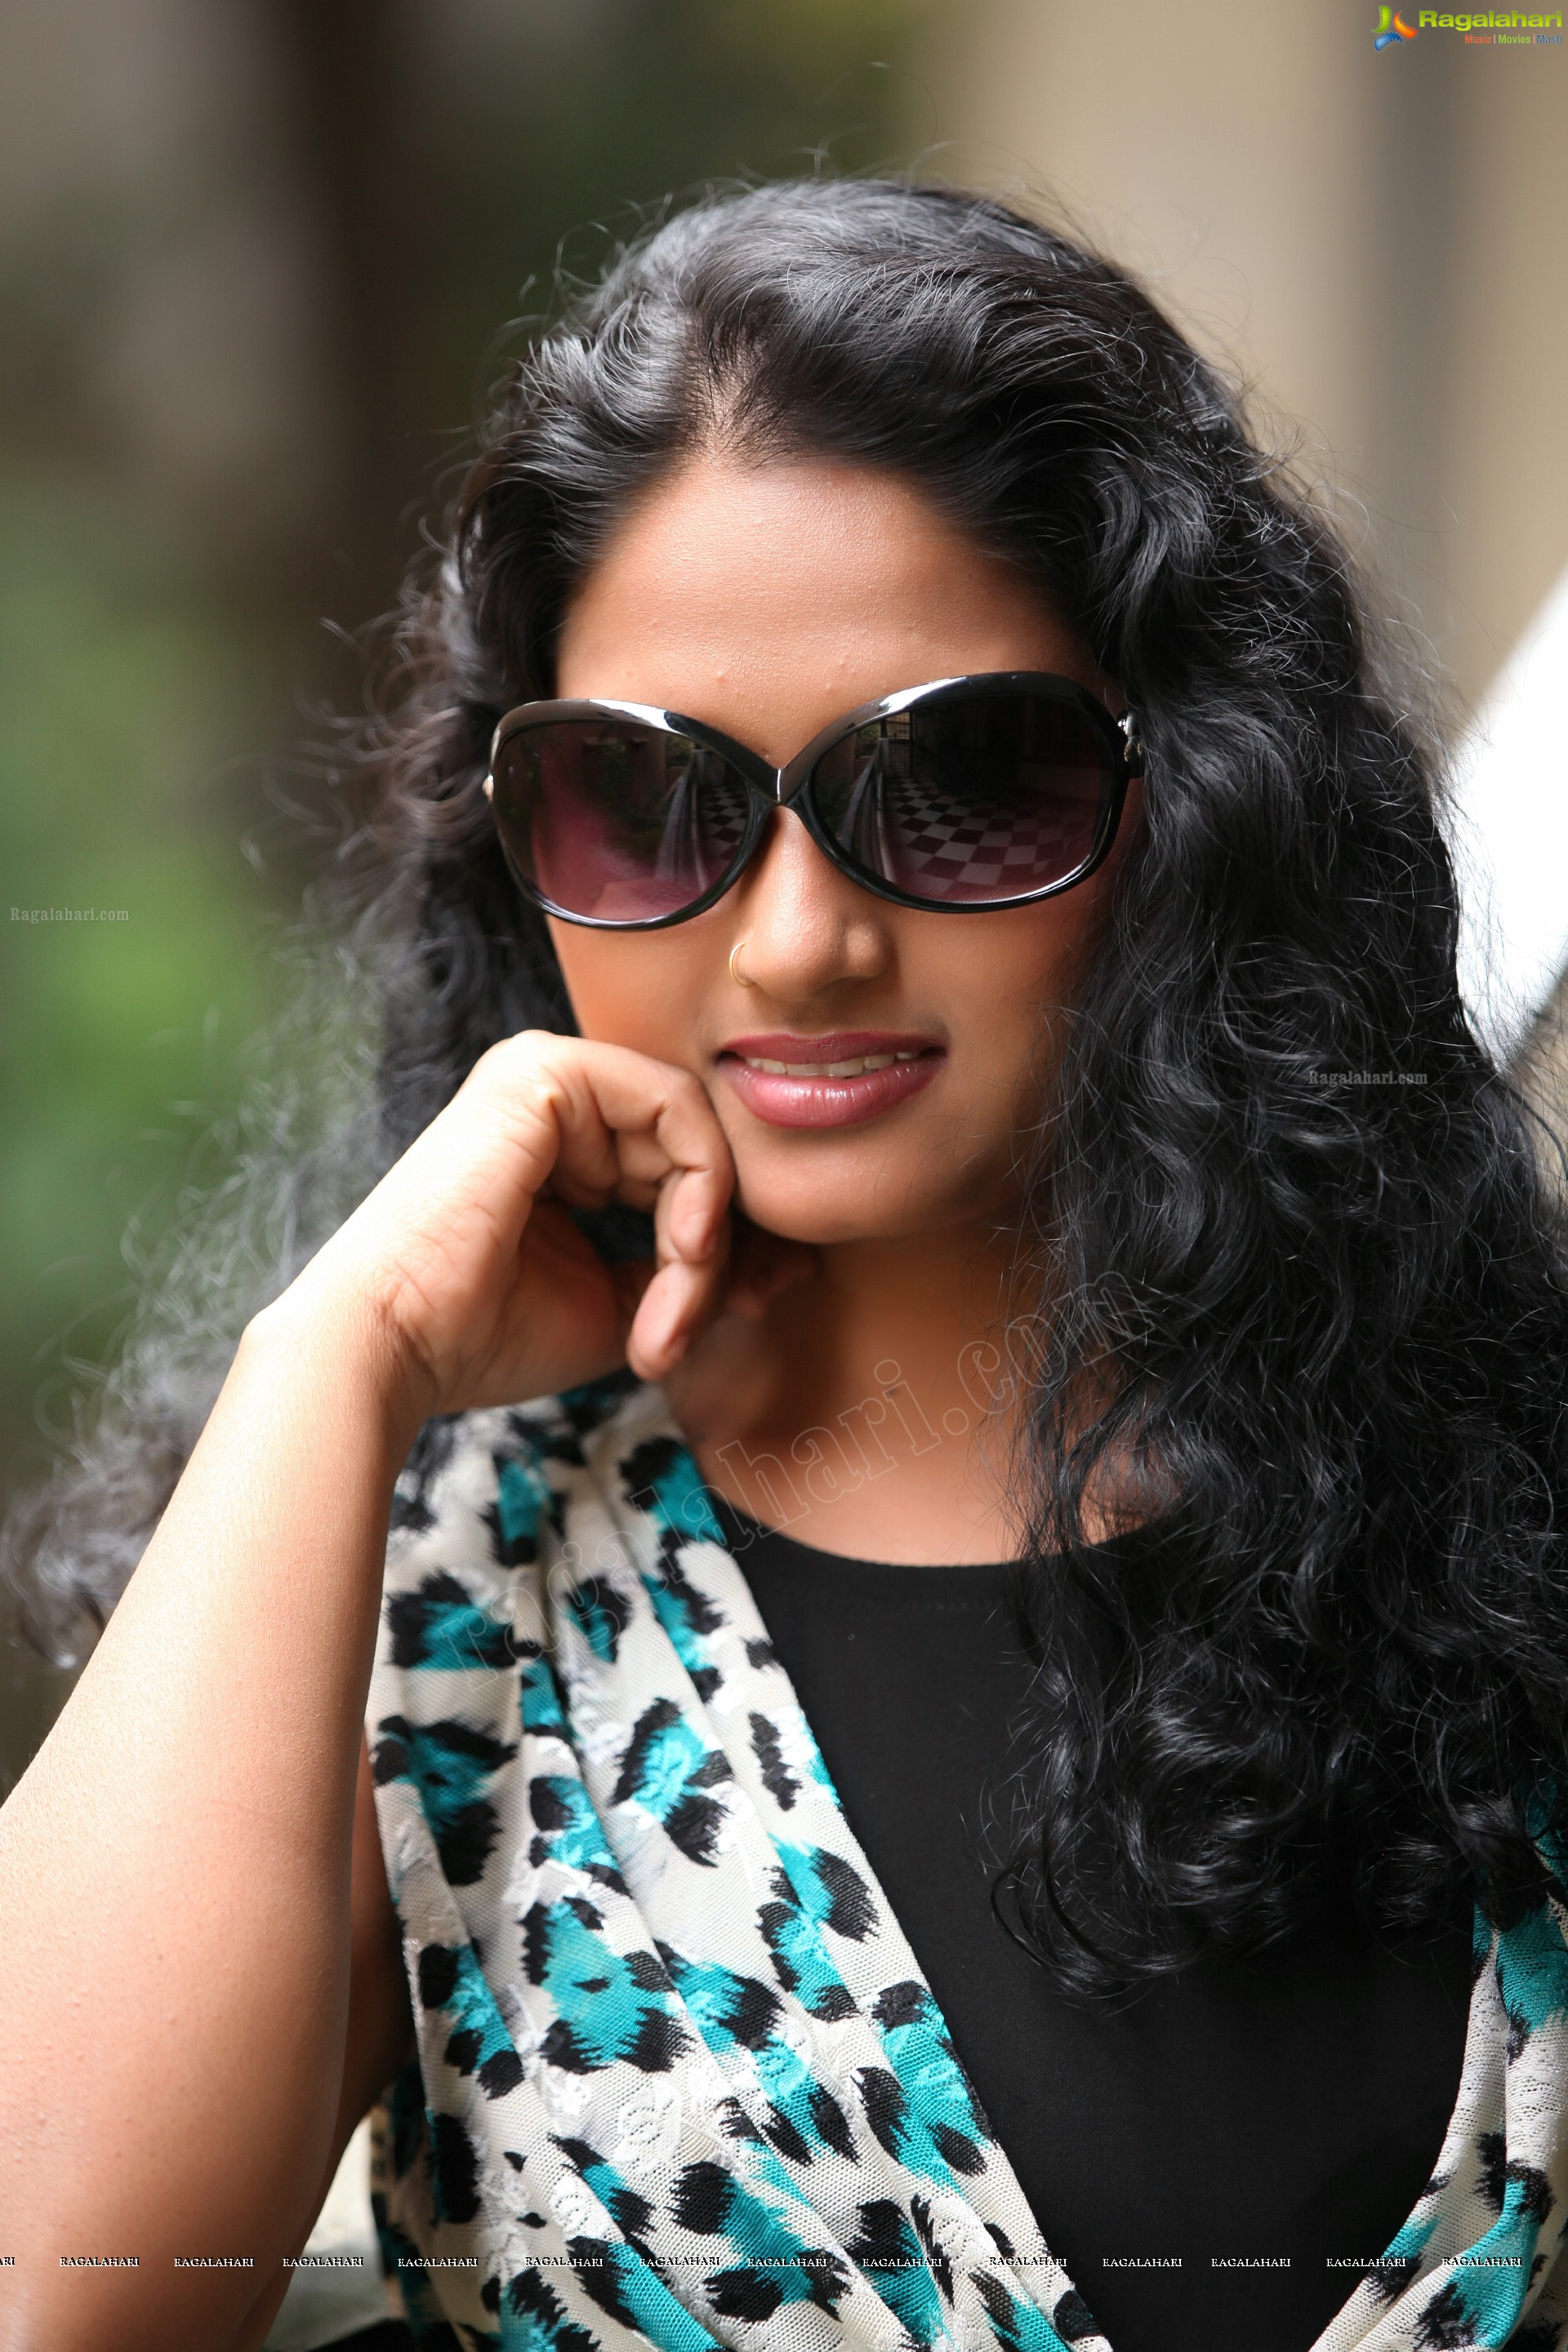 Veera Chowdary (Exclusive) (High Defition) Image 30 | Telugu